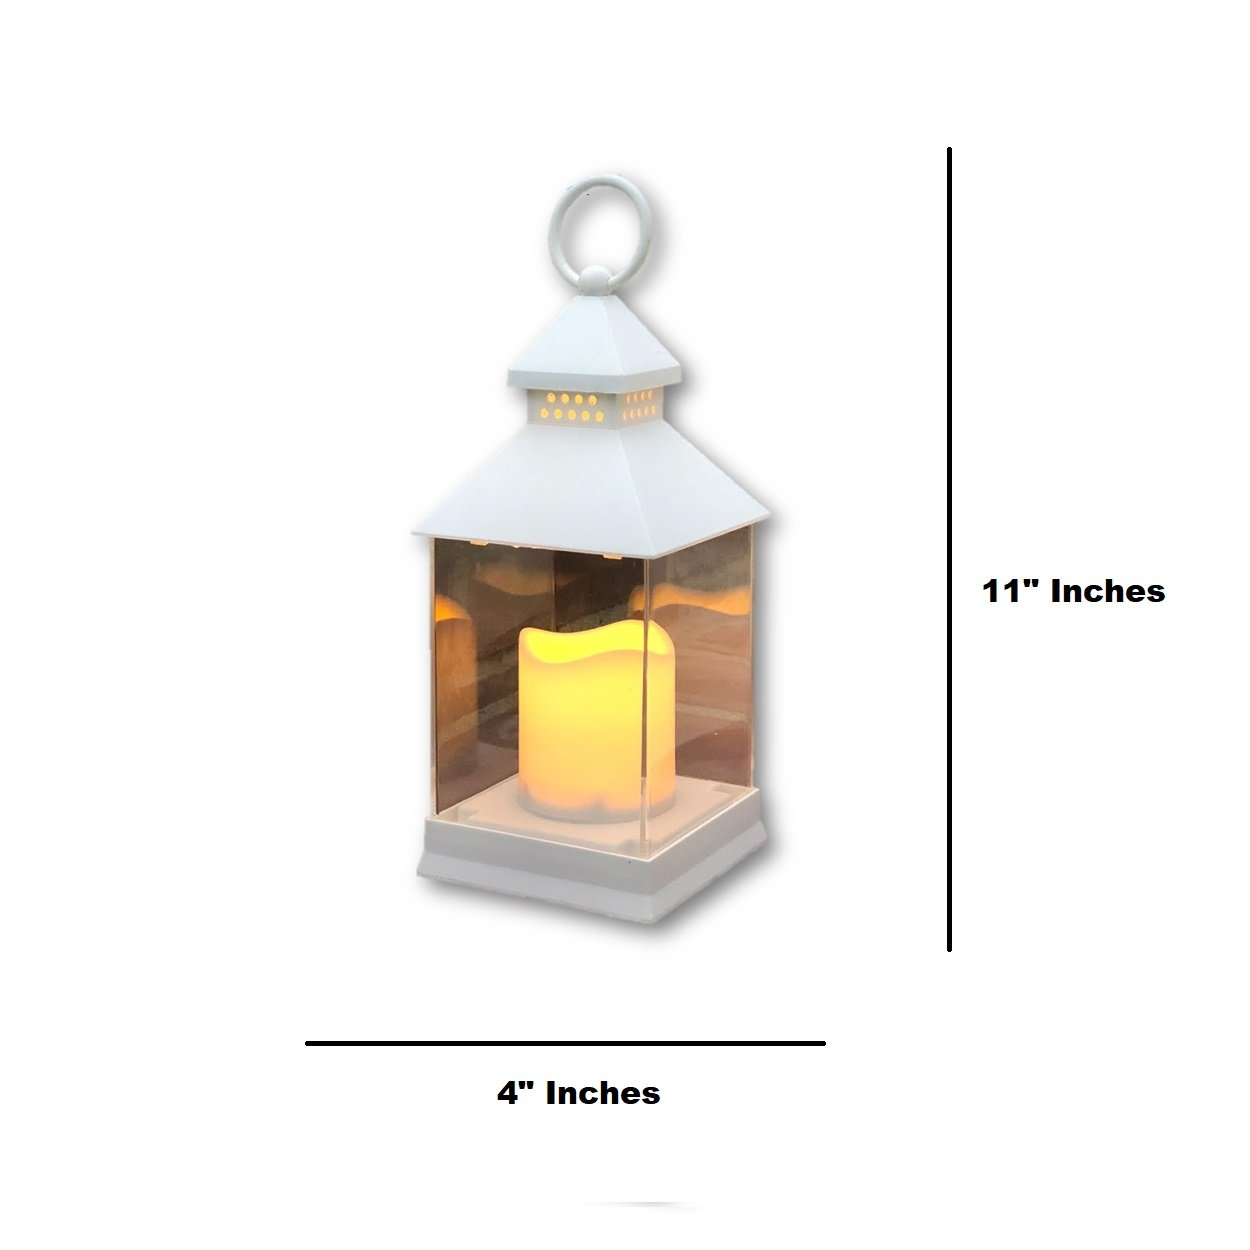 Just In Time for Spring {12 Pc SET} - 10'' Decorative Lanterns With Flameless LED Lighted Candle 5 Hr Timer Modern Look Indoor Outdoor Home, Garden, Weddings - Includes Bonus String Lights! White. by The Nifty Nook (Image #5)